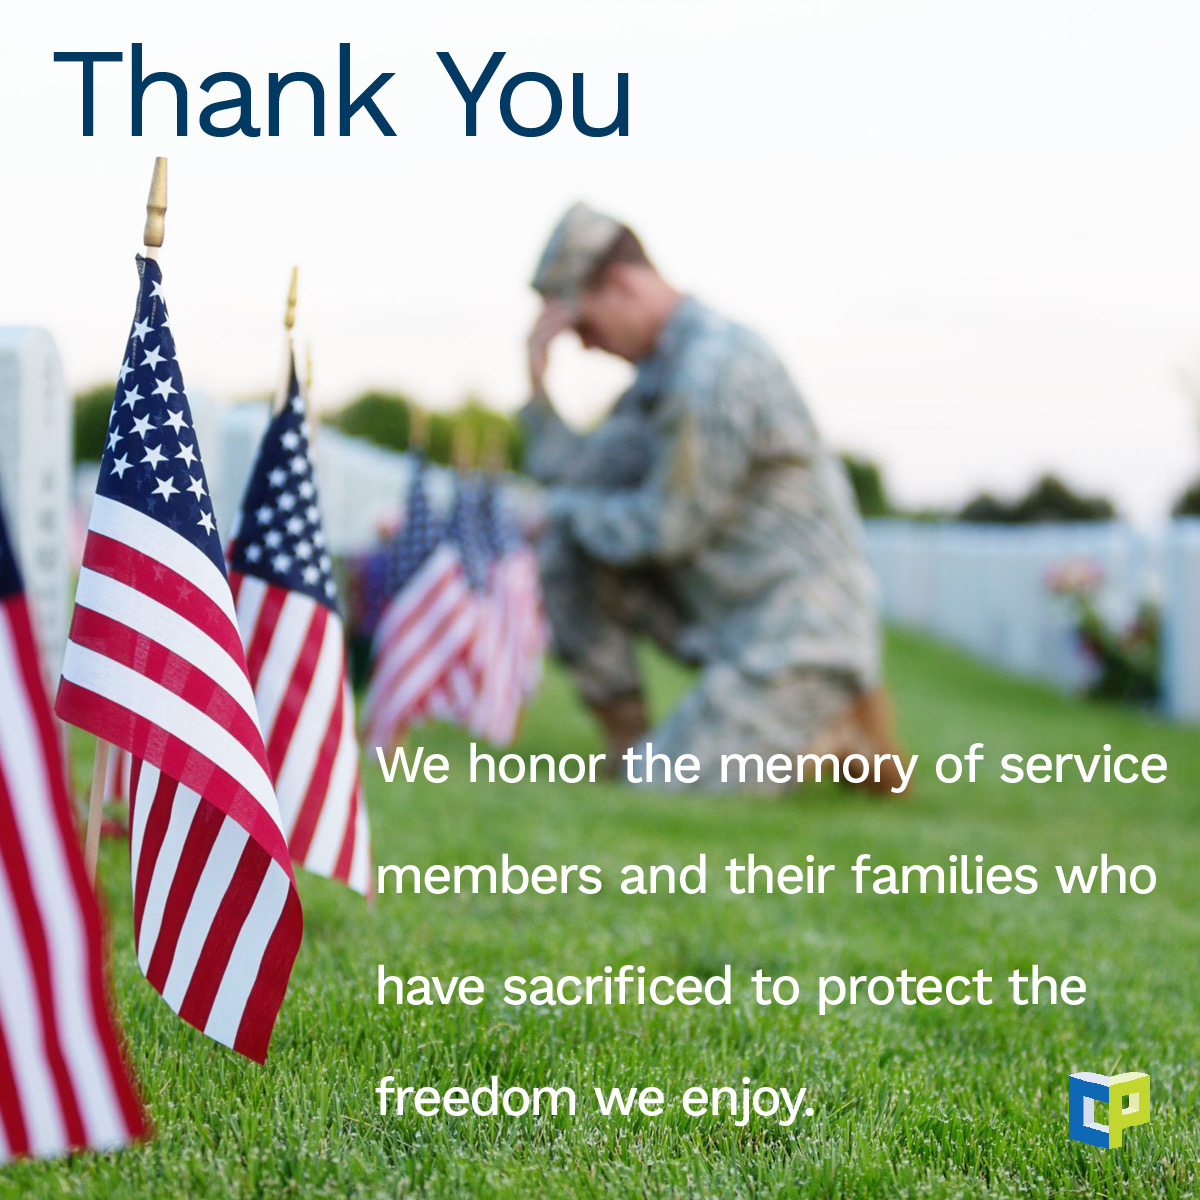 test Twitter Media - Citadel Partners wishes everyone a safe Memorial Day Weekend! #CitadelPartners #DallasCommericalRealEstate #business #memorialday #usa https://t.co/PX1hubKPGt